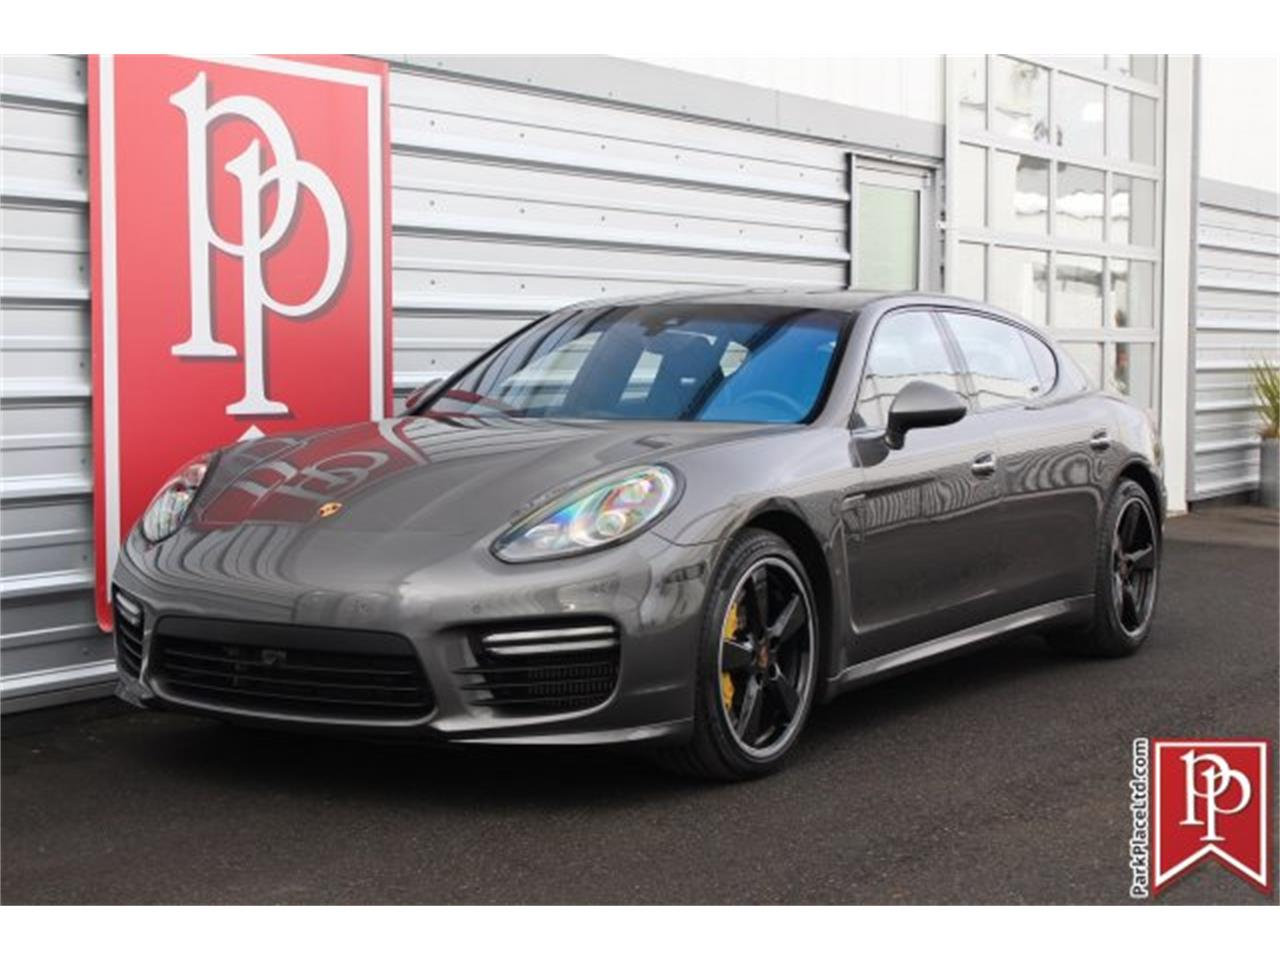 2014 Porsche Panamera for sale in Bellevue, WA – photo 2